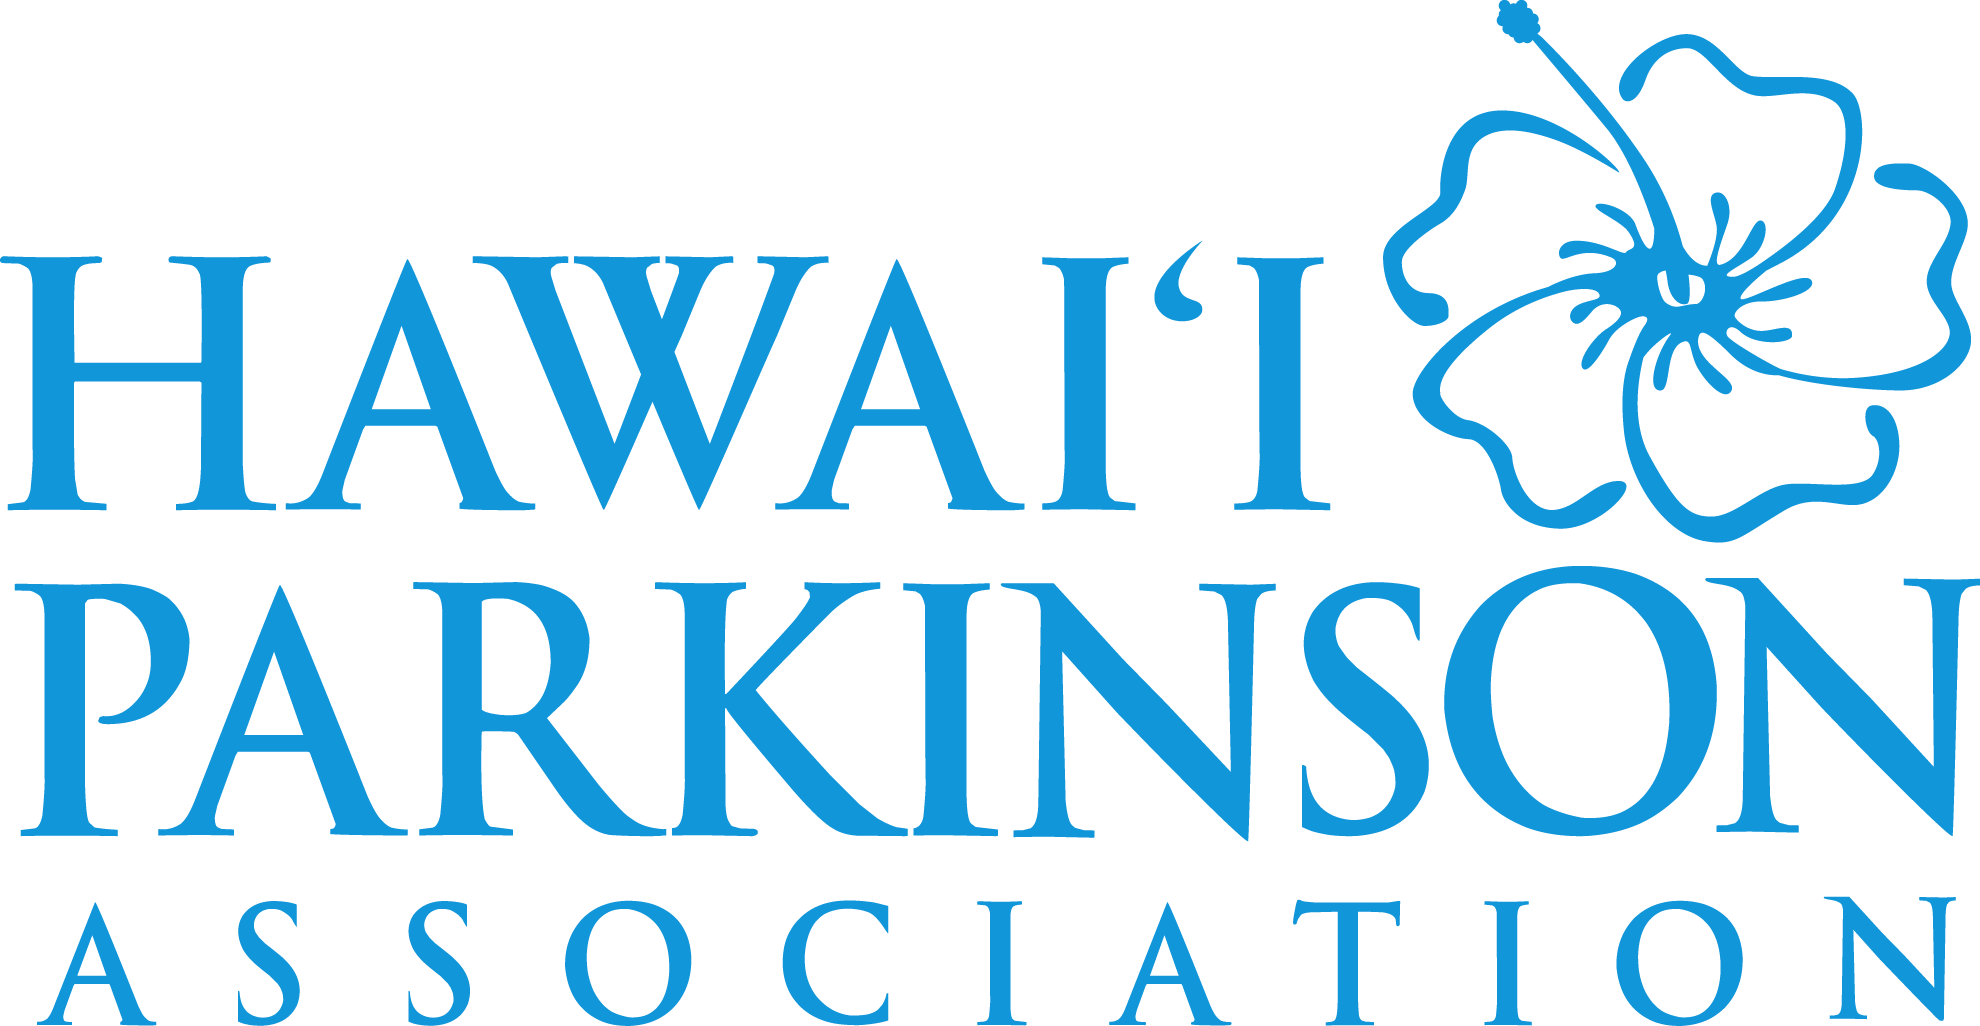 Hawaii Parkinson Association